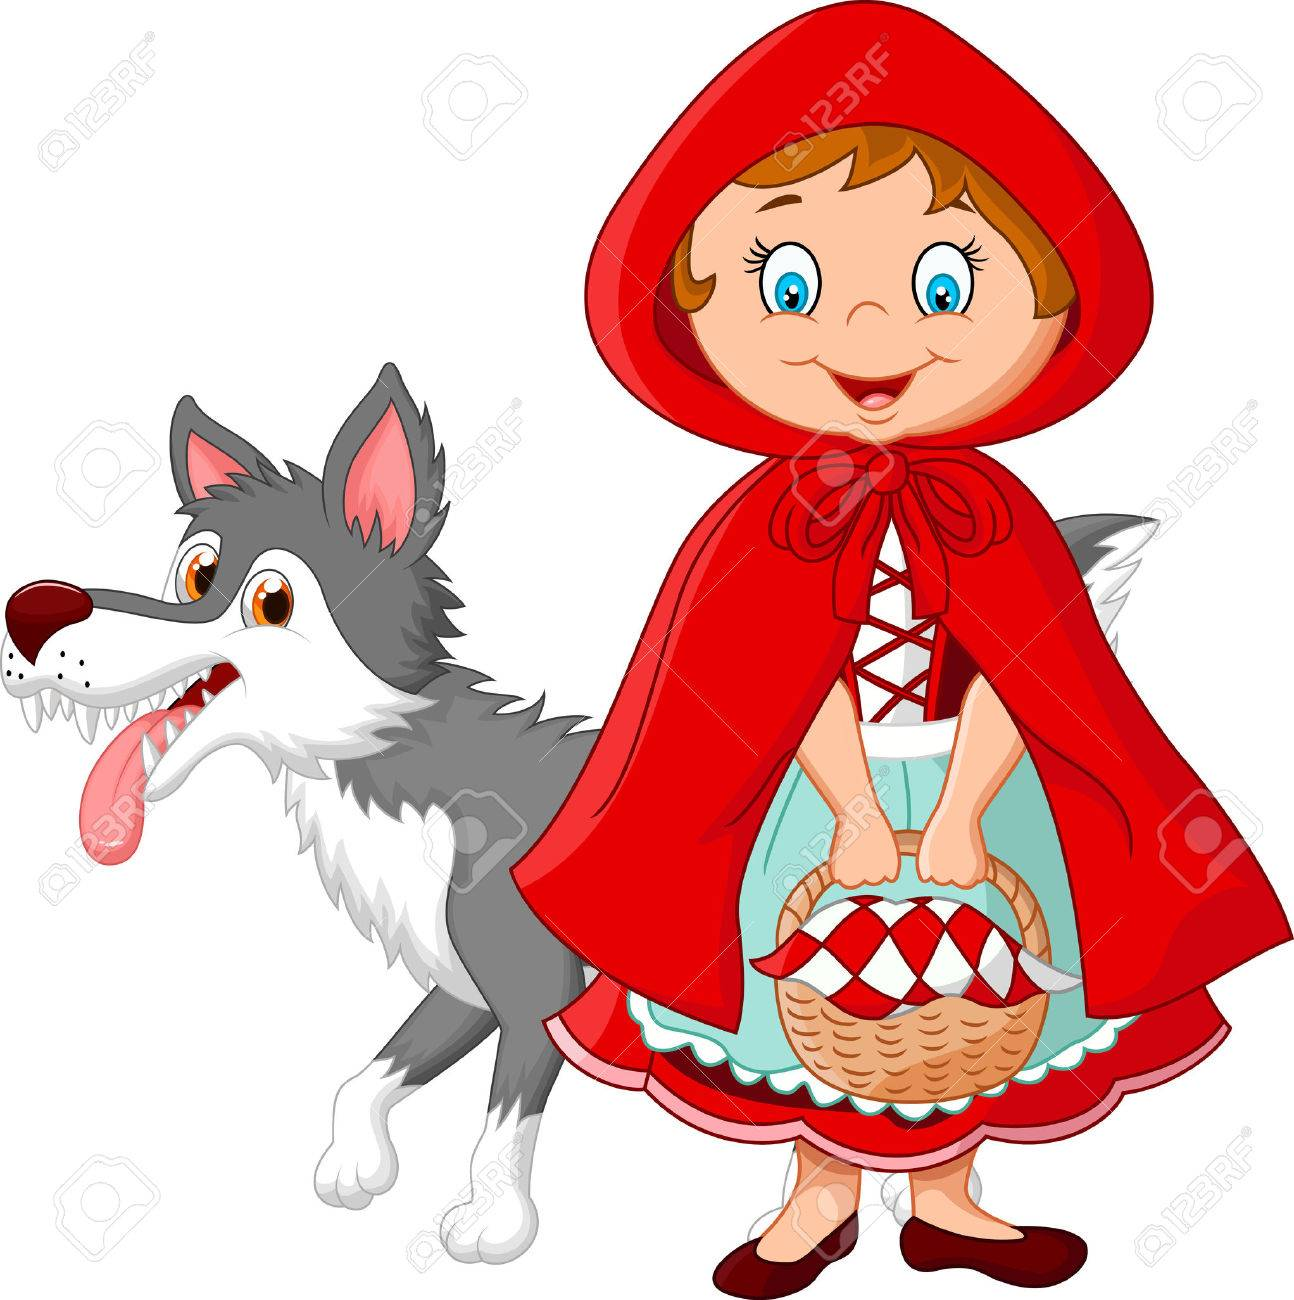 illustration of little red riding hood meeting with a wolf royalty rh 123rf com little red riding hood story clipart little red riding hood wolf clipart